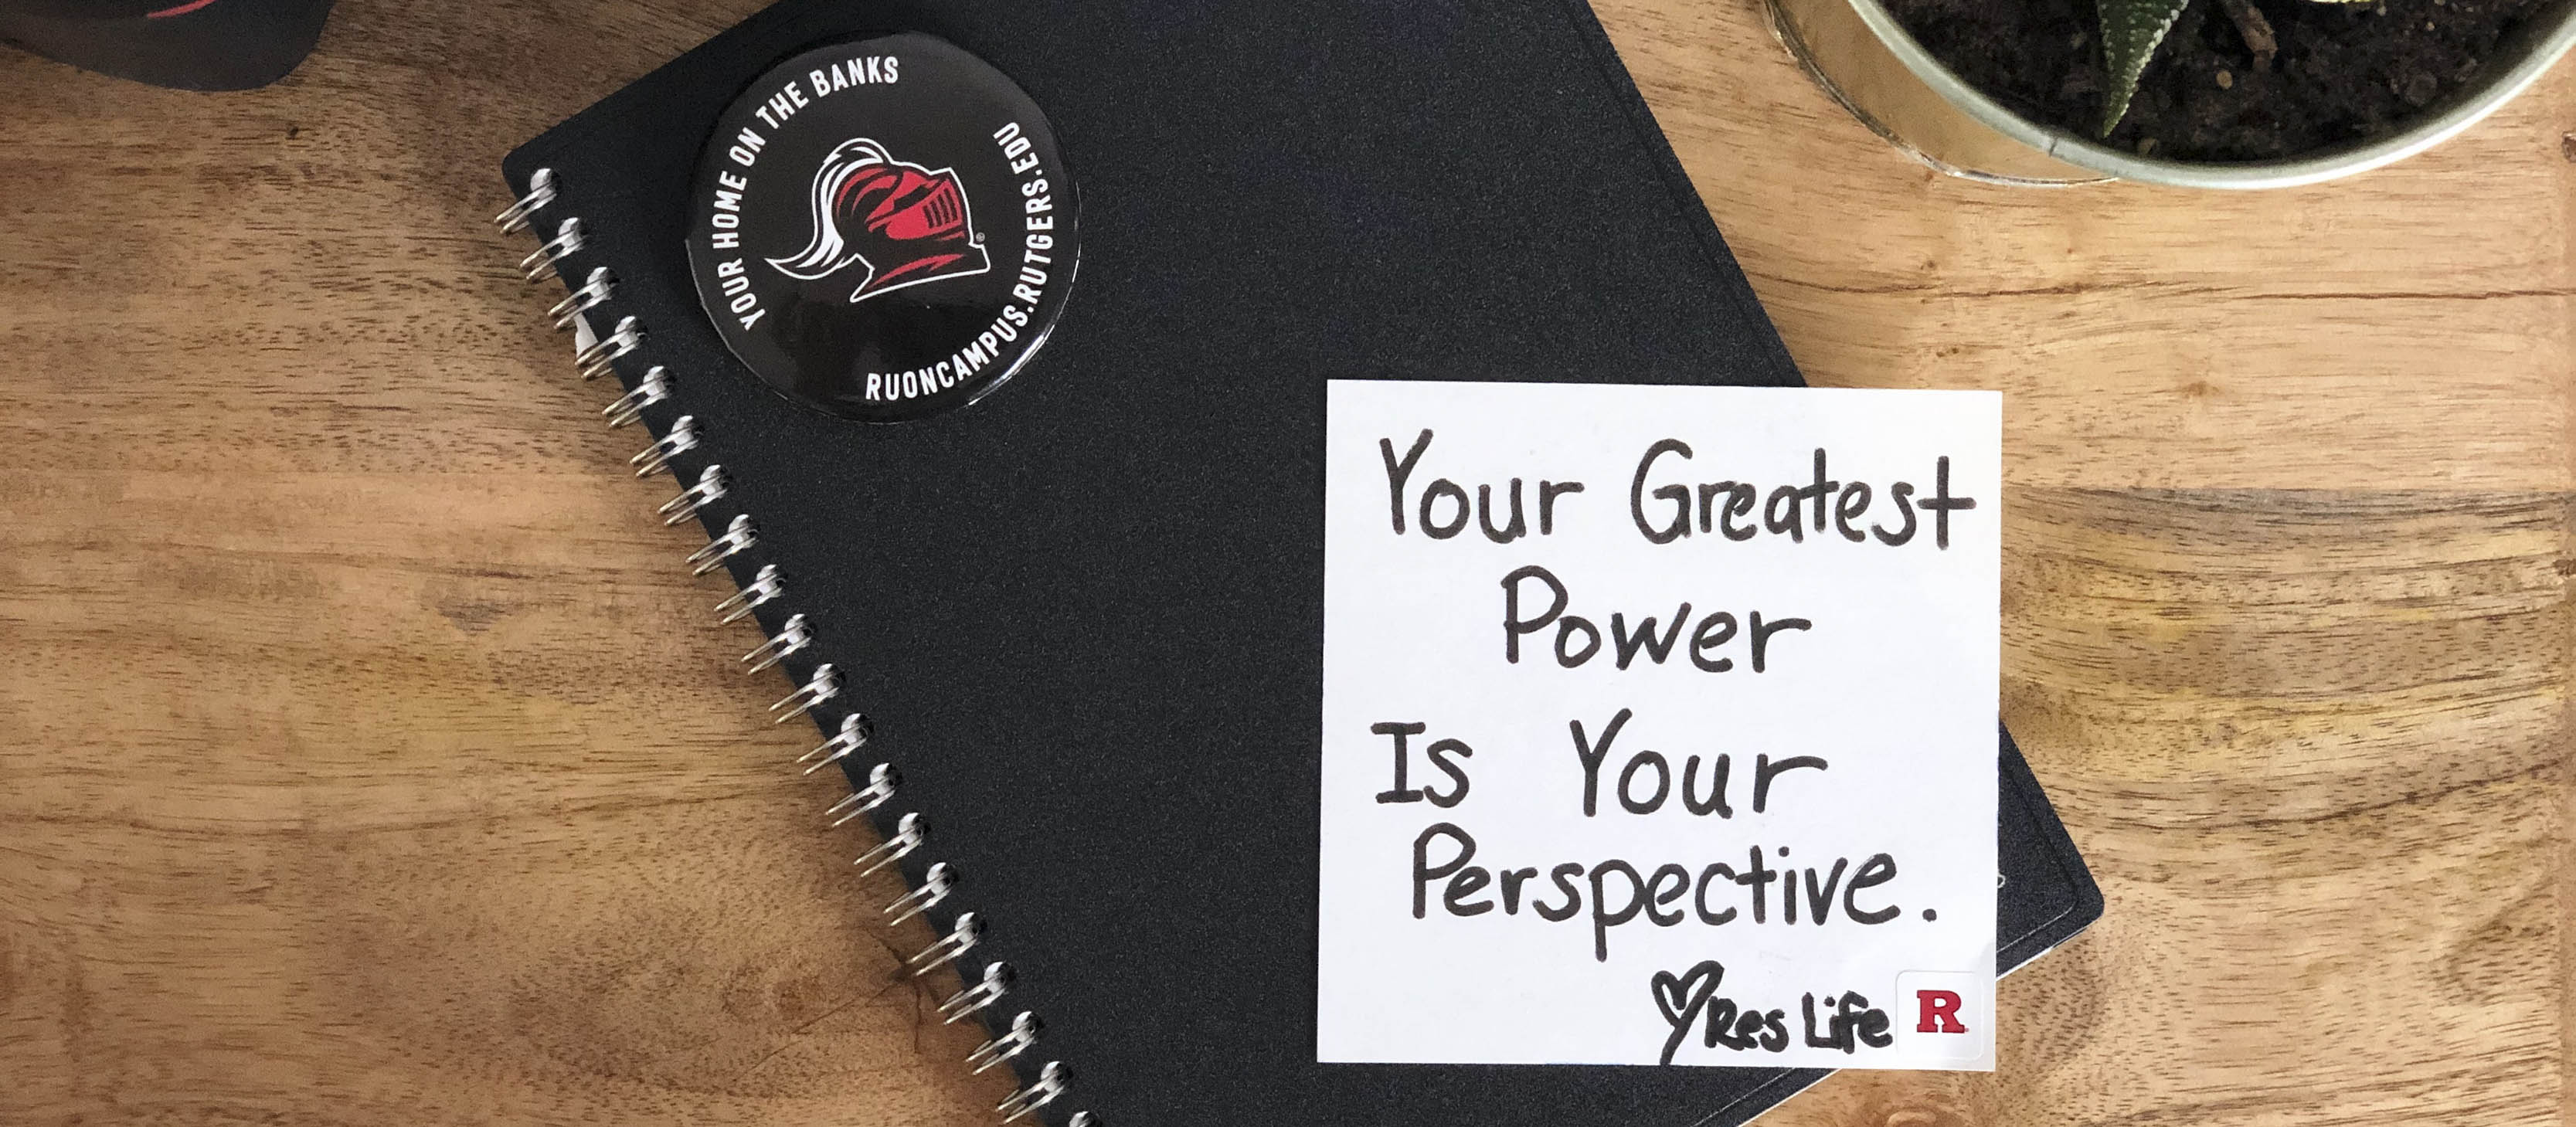 Greatest-Power-is-Your-Perspective